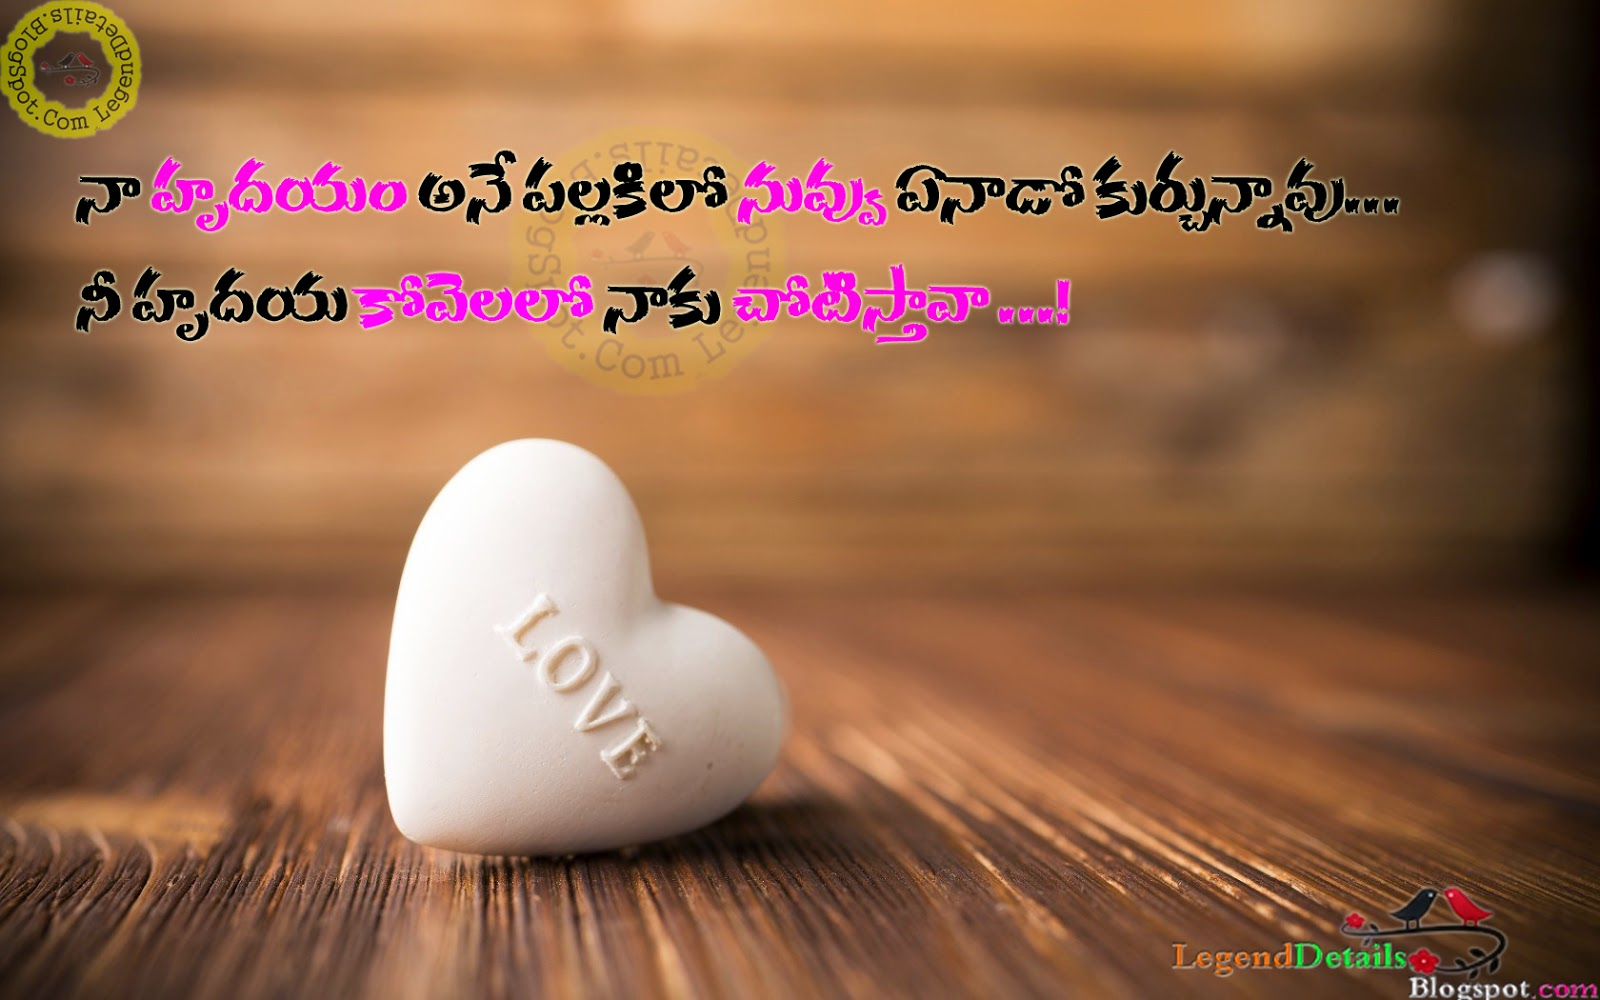 Telugu Love Quotes Cool Telugu Love Sms With Hd Images  Heart Touching Telugu Love Sms